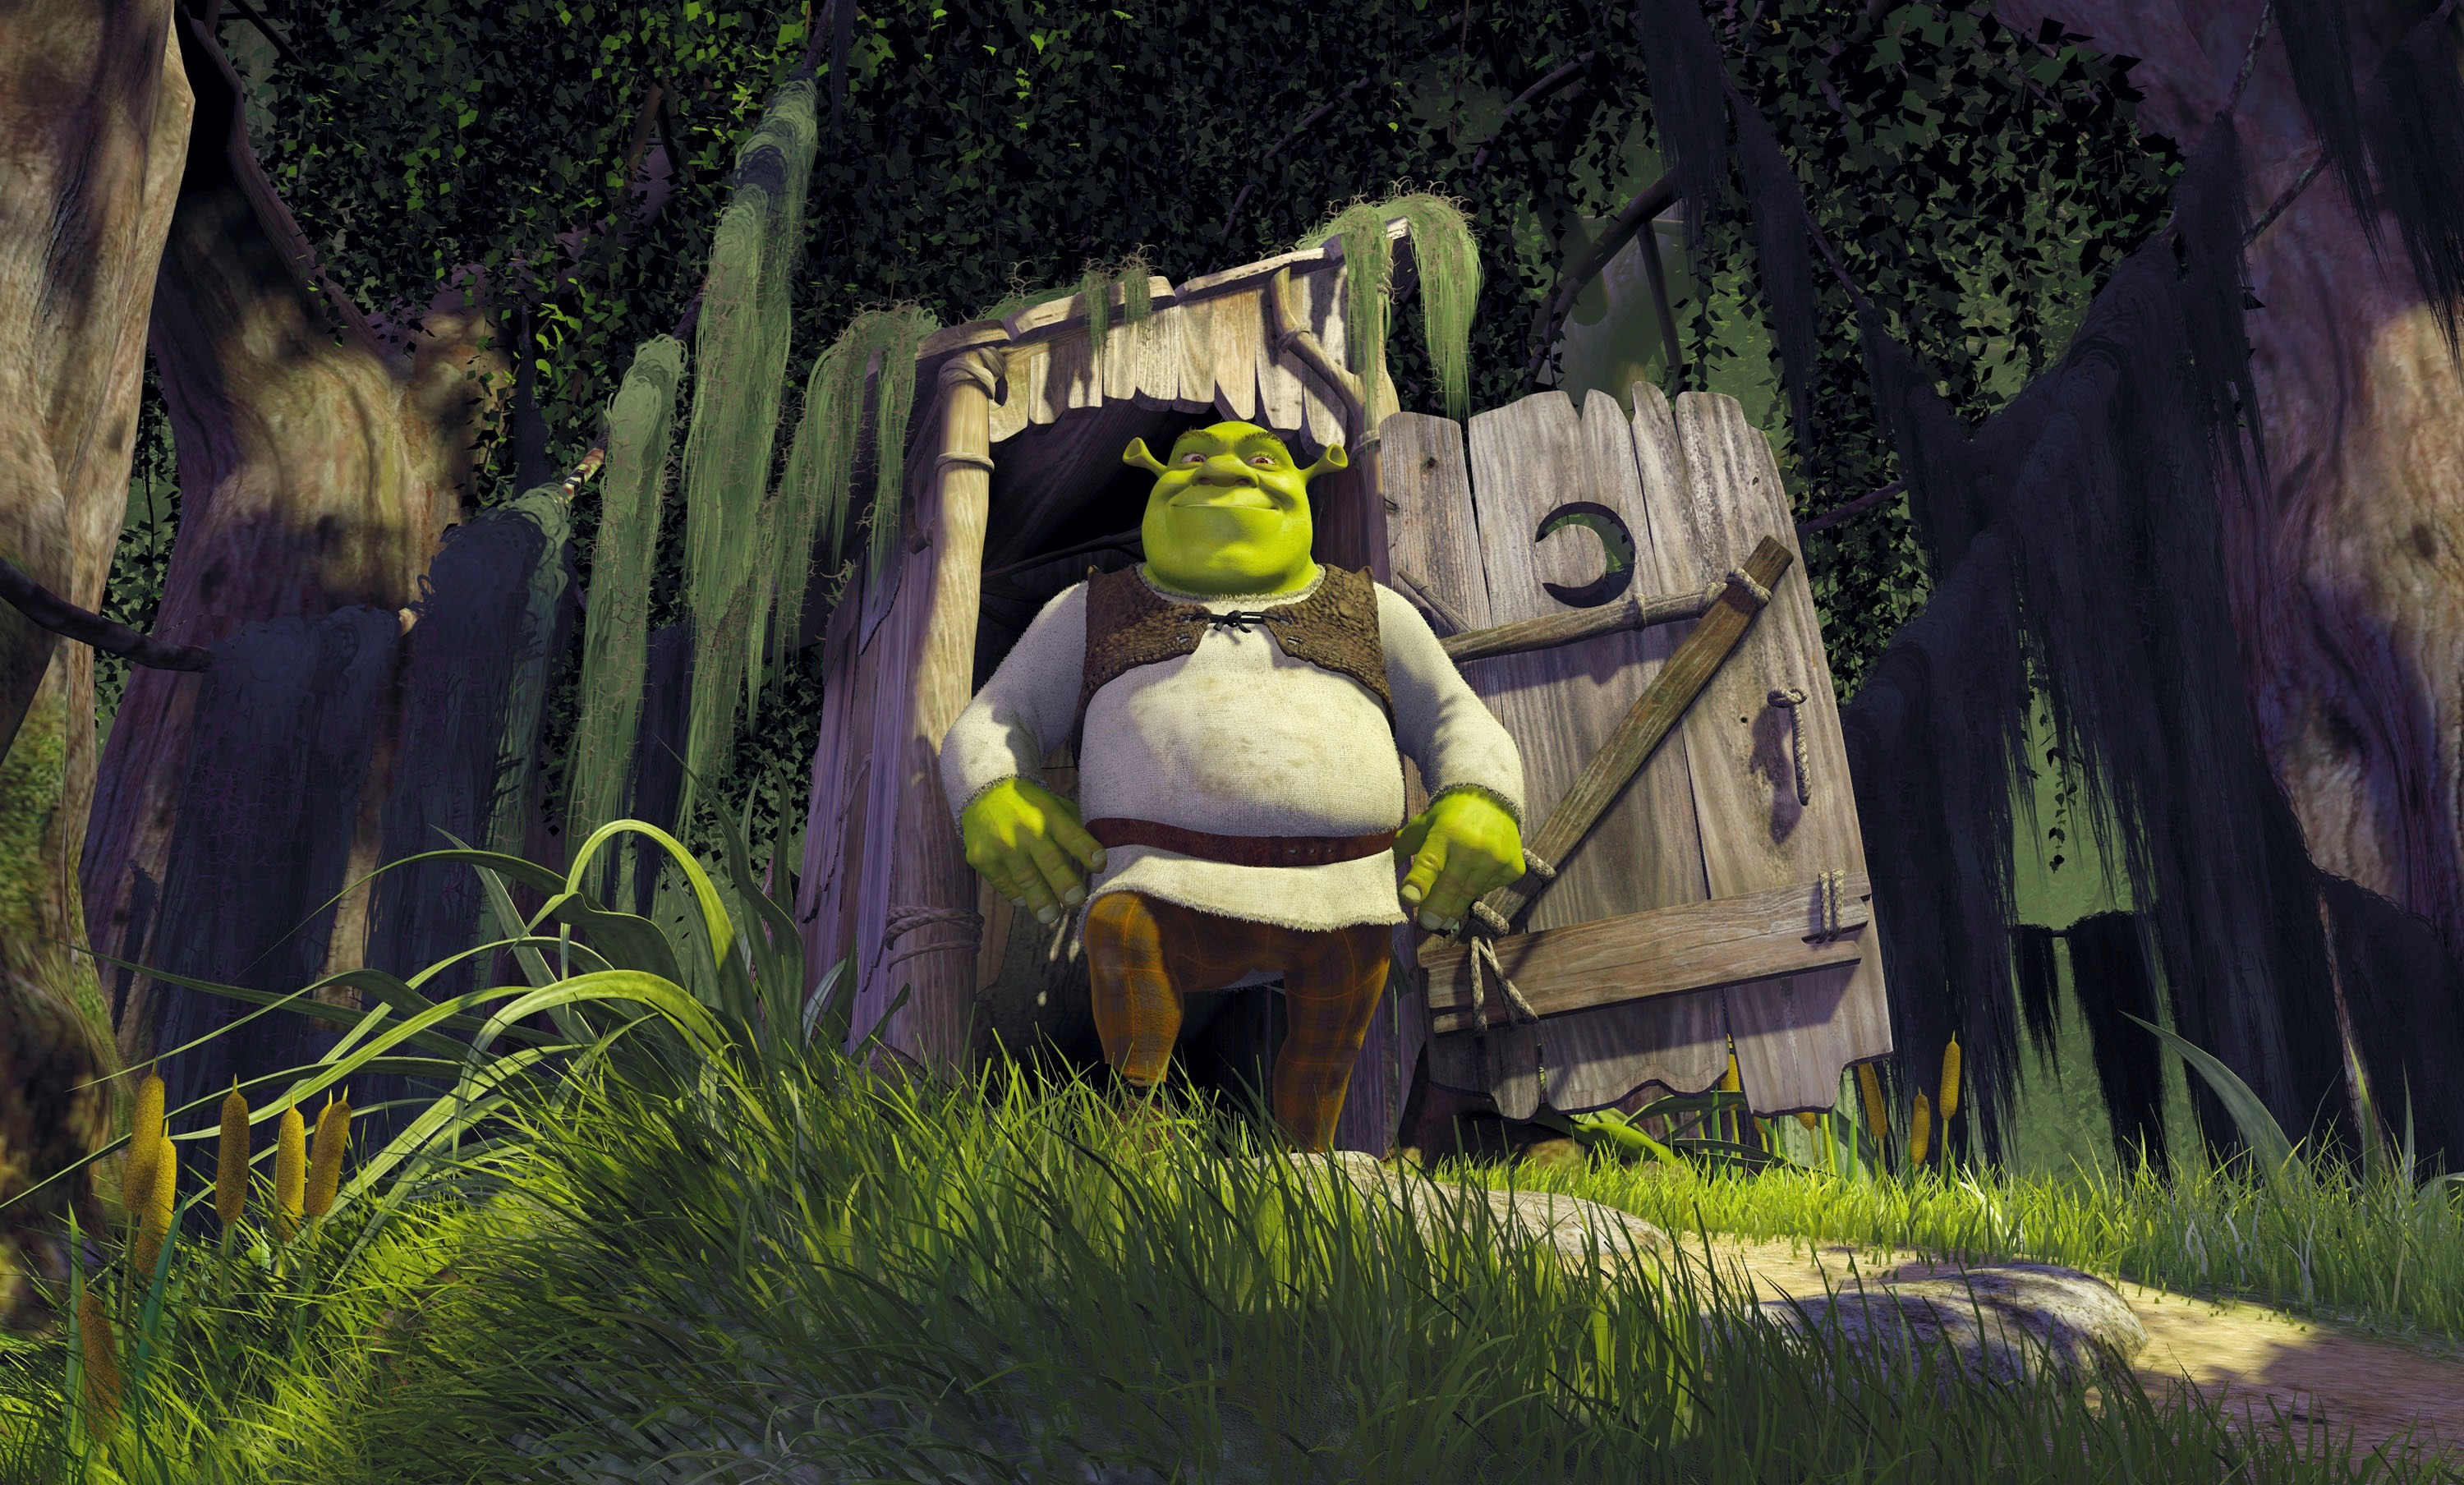 3000x1808 Shrek Extra Large HD Wallpapers Backgrounds Wallpaper | Wallpapers 4k |  Pinterest | Cartoon background, Shrek and Wallpaper